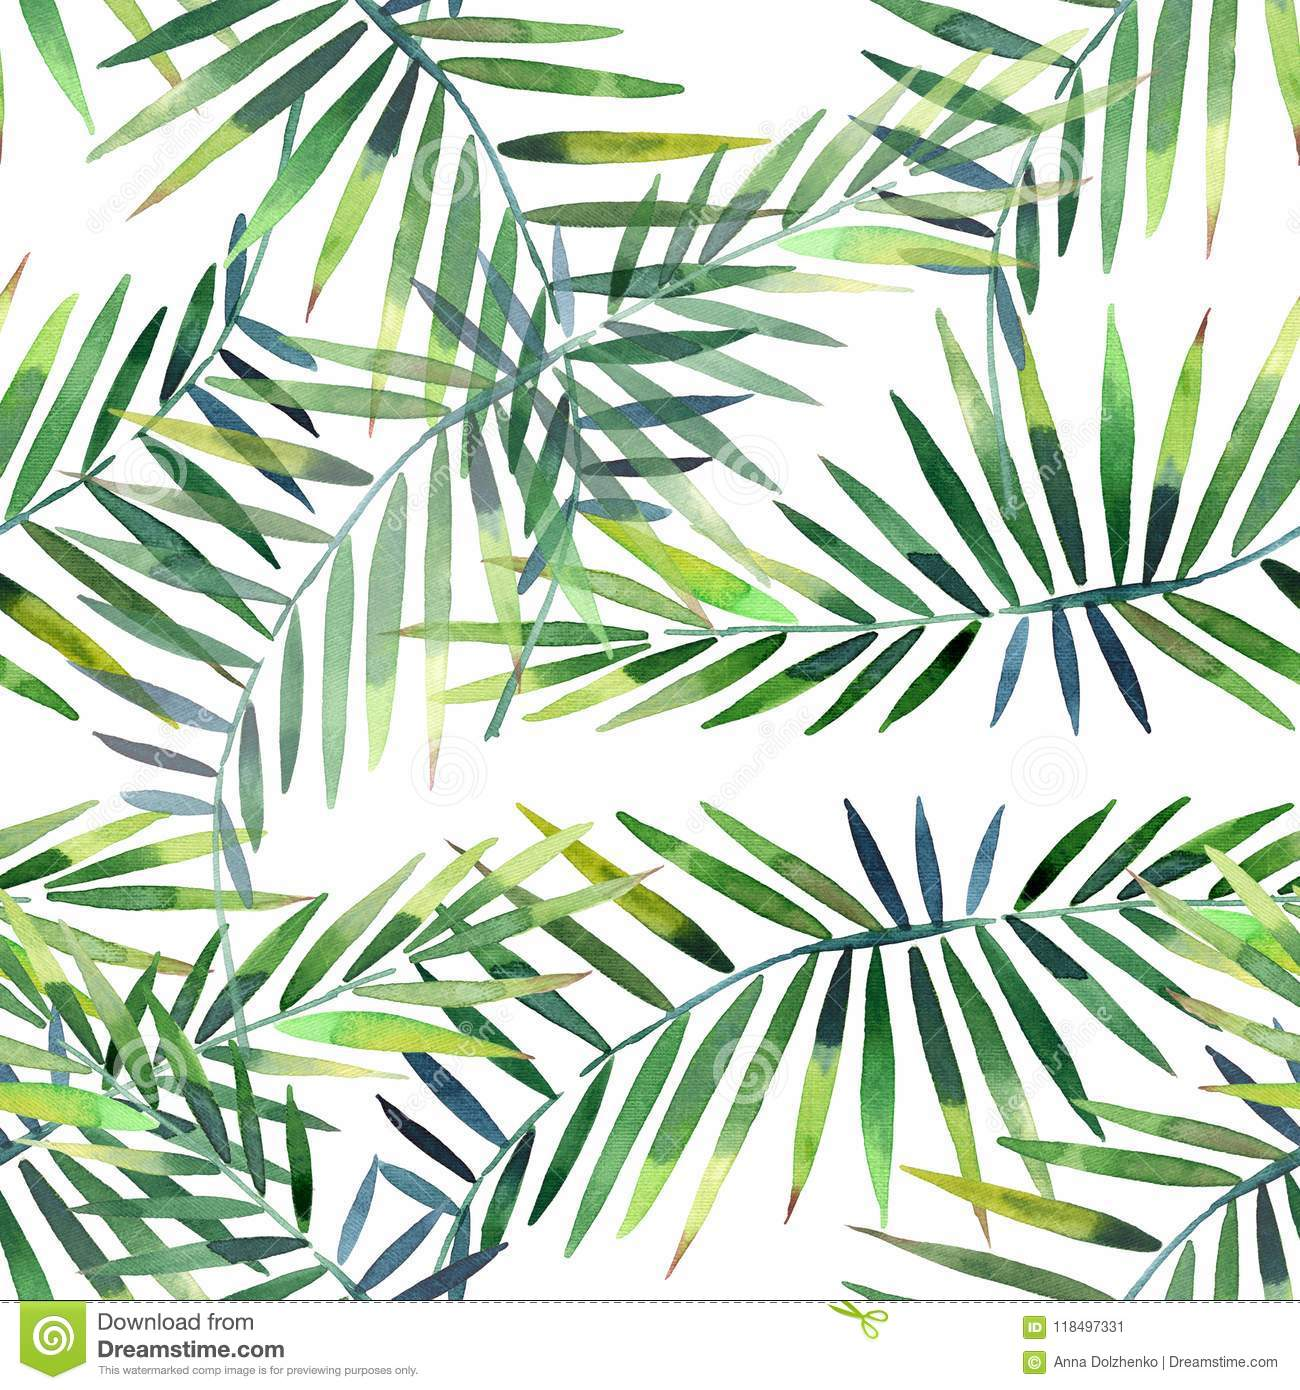 Bright beautiful green herbal tropical wonderful hawaii floral summer pattern of a tropic palm and monstera leaves watercolor hand